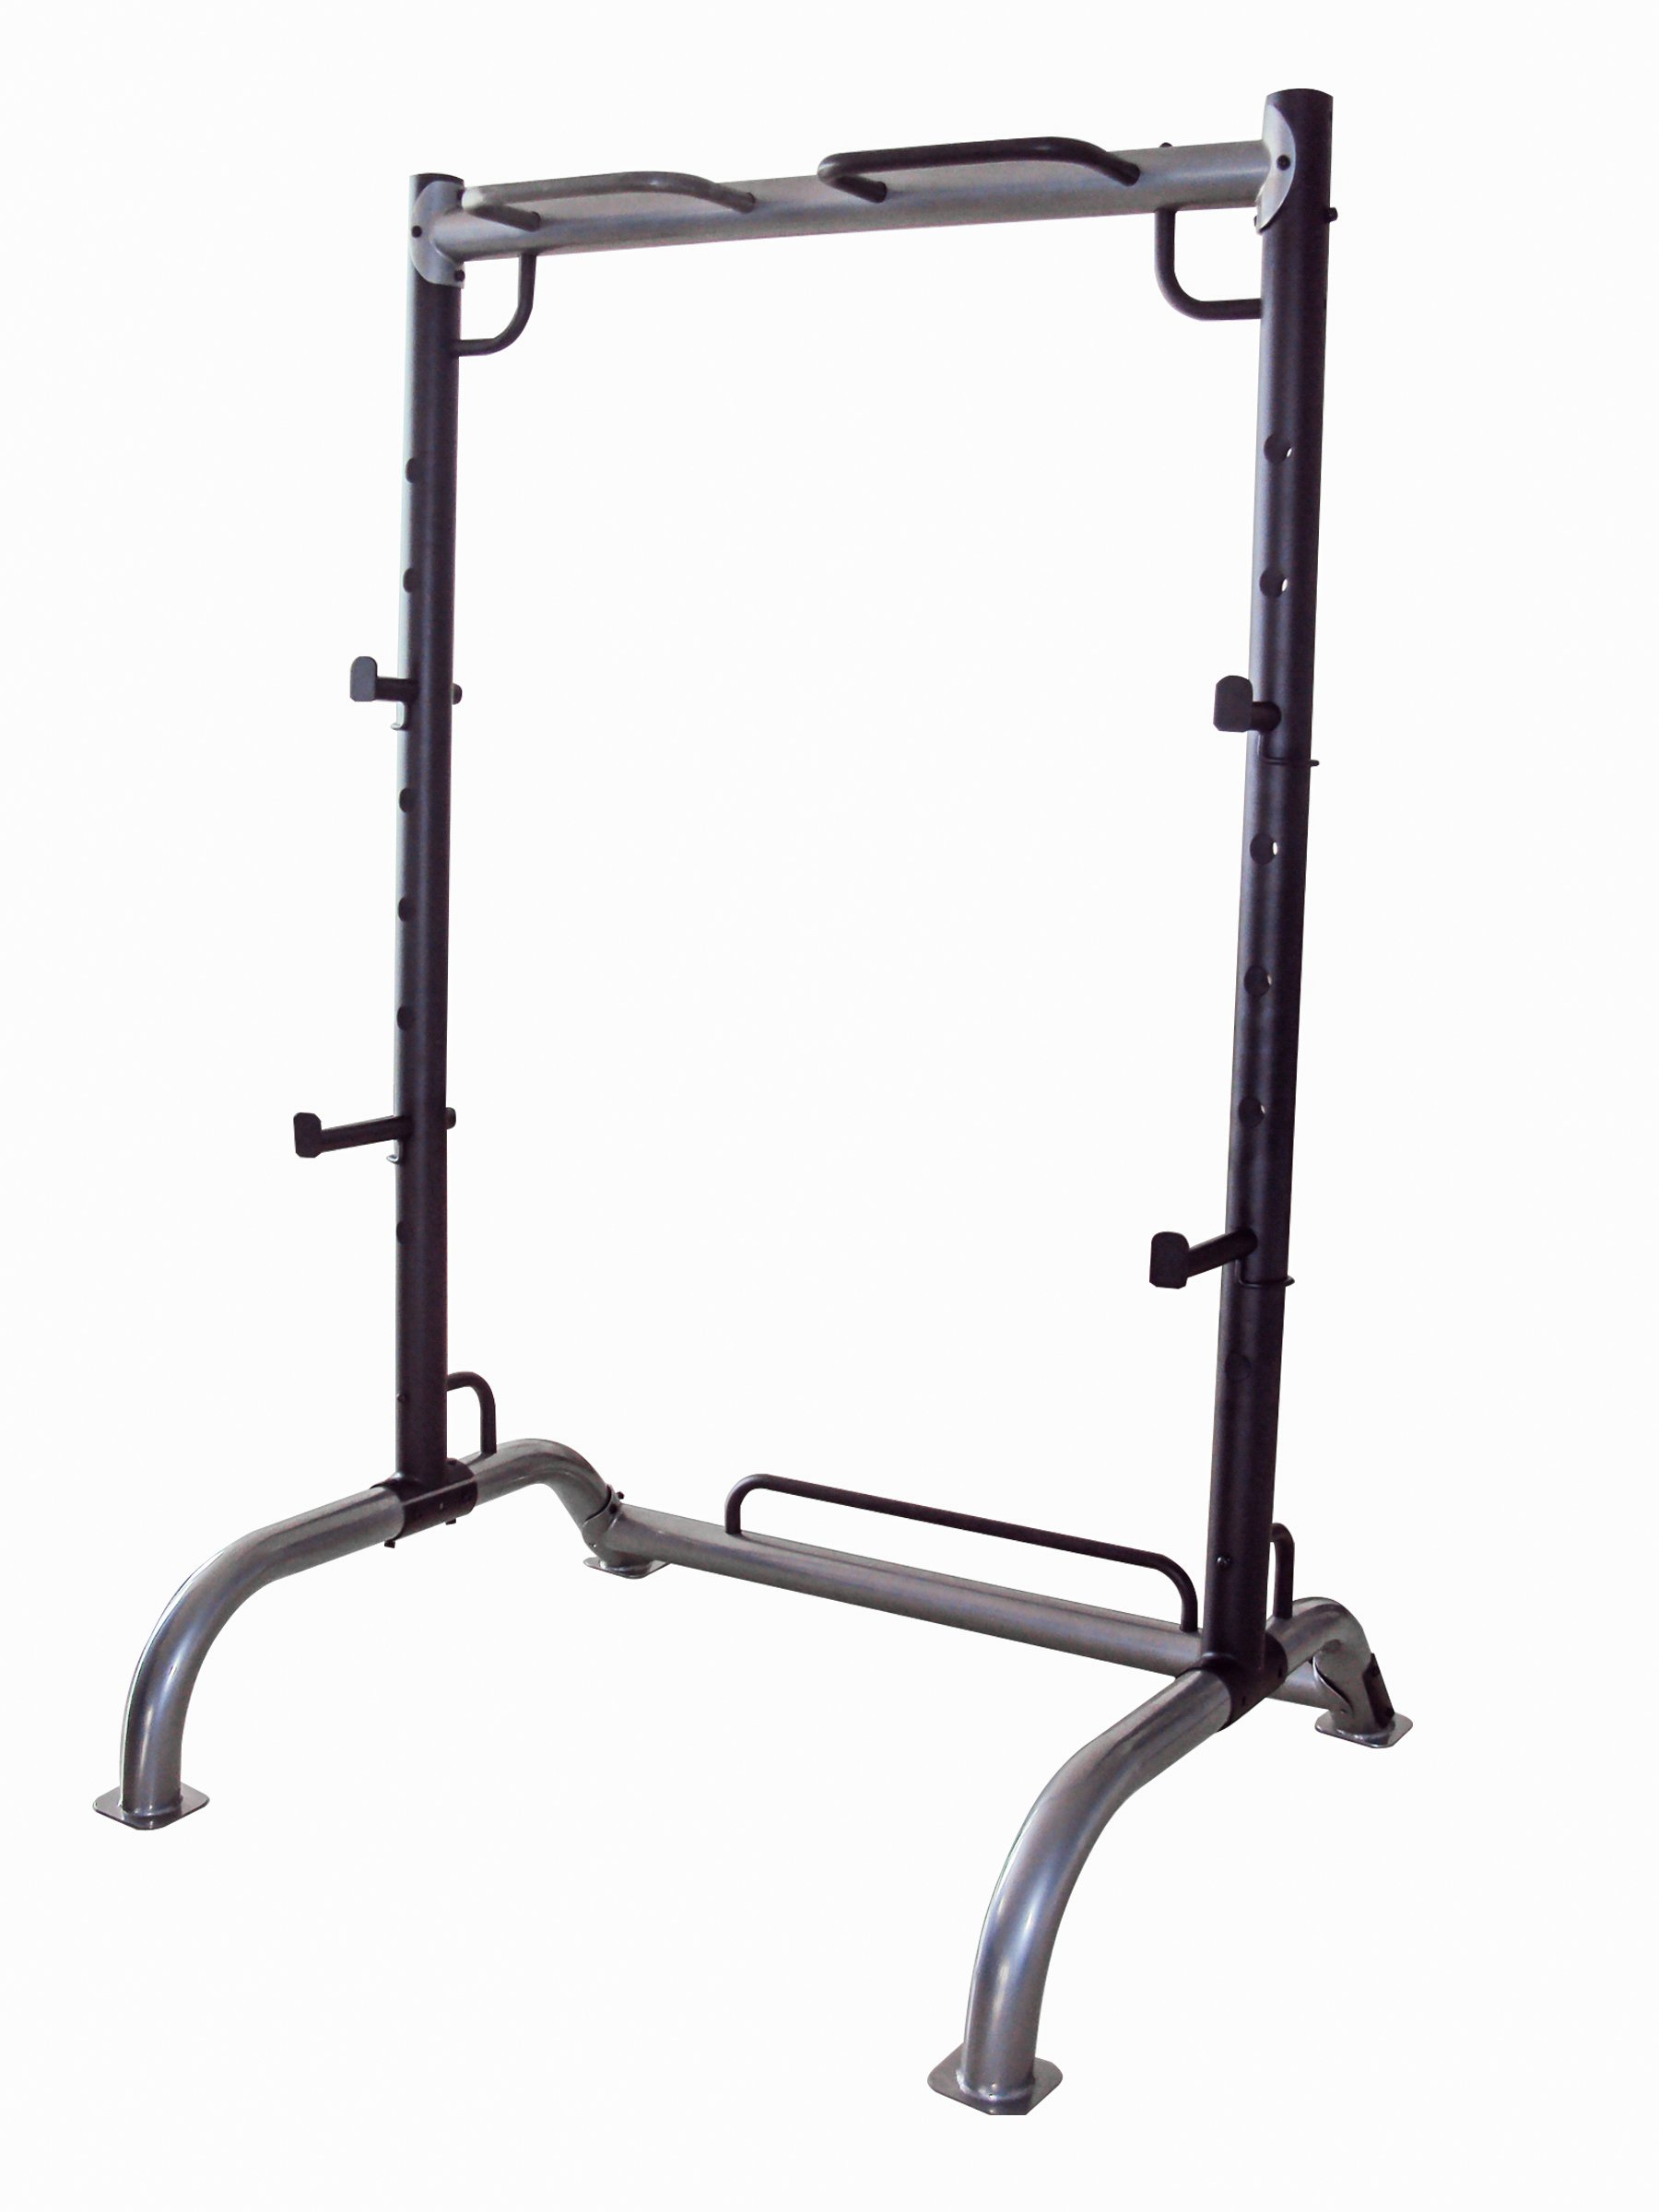 Marcy Cage Squat Rack Pull Up and Push Up Station with Olympic Barbell Catches MWB-70500 by Marcy